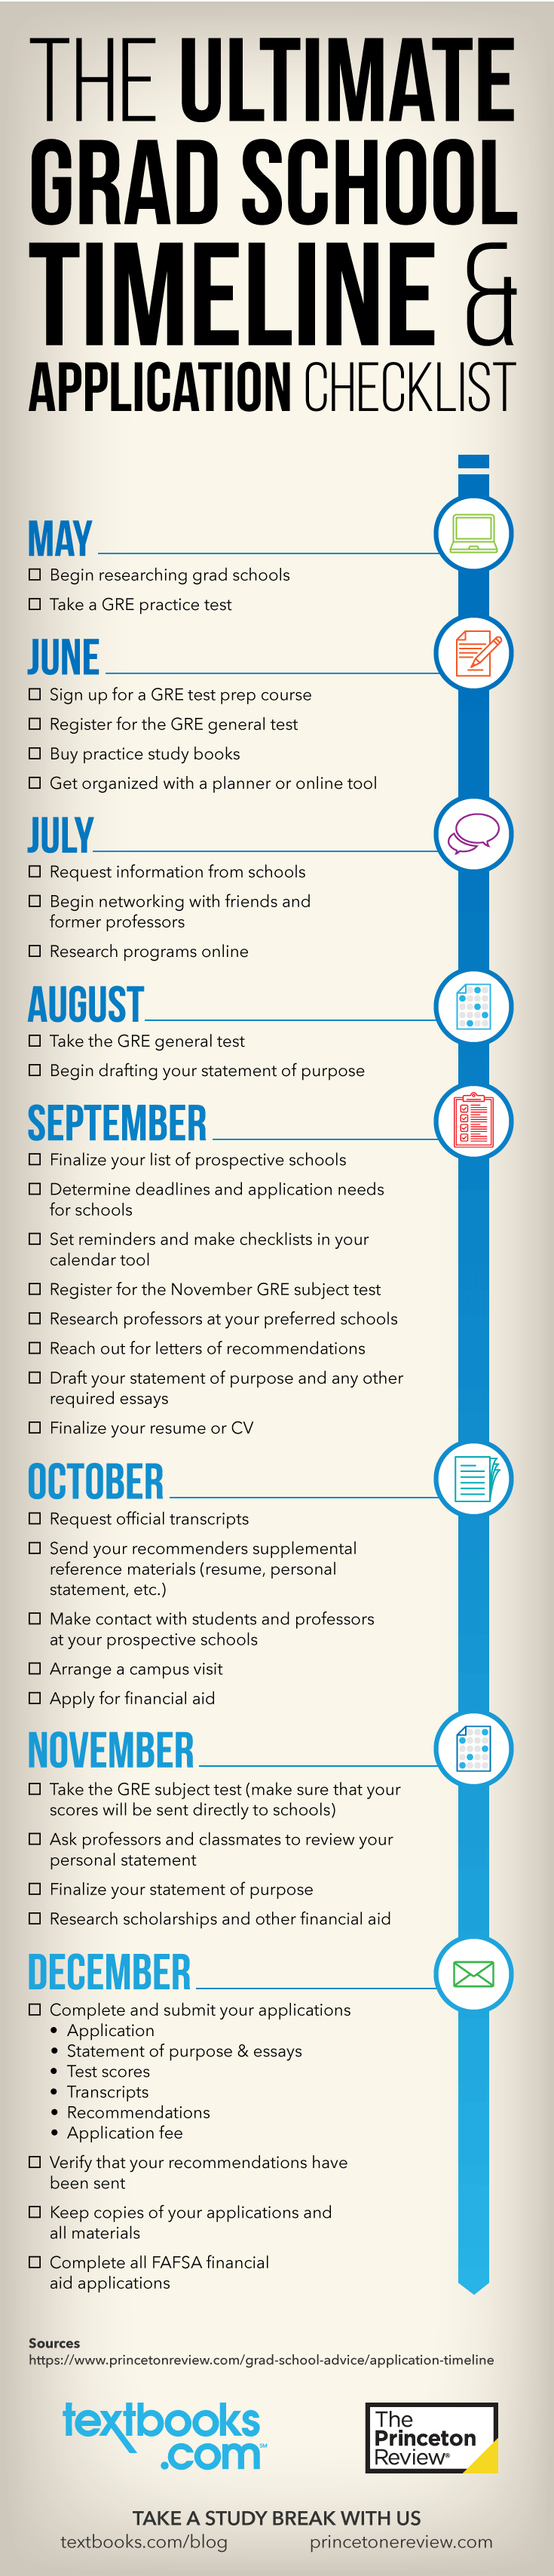 Tips for Applying to Graduate School Timeline Checklist Infographic